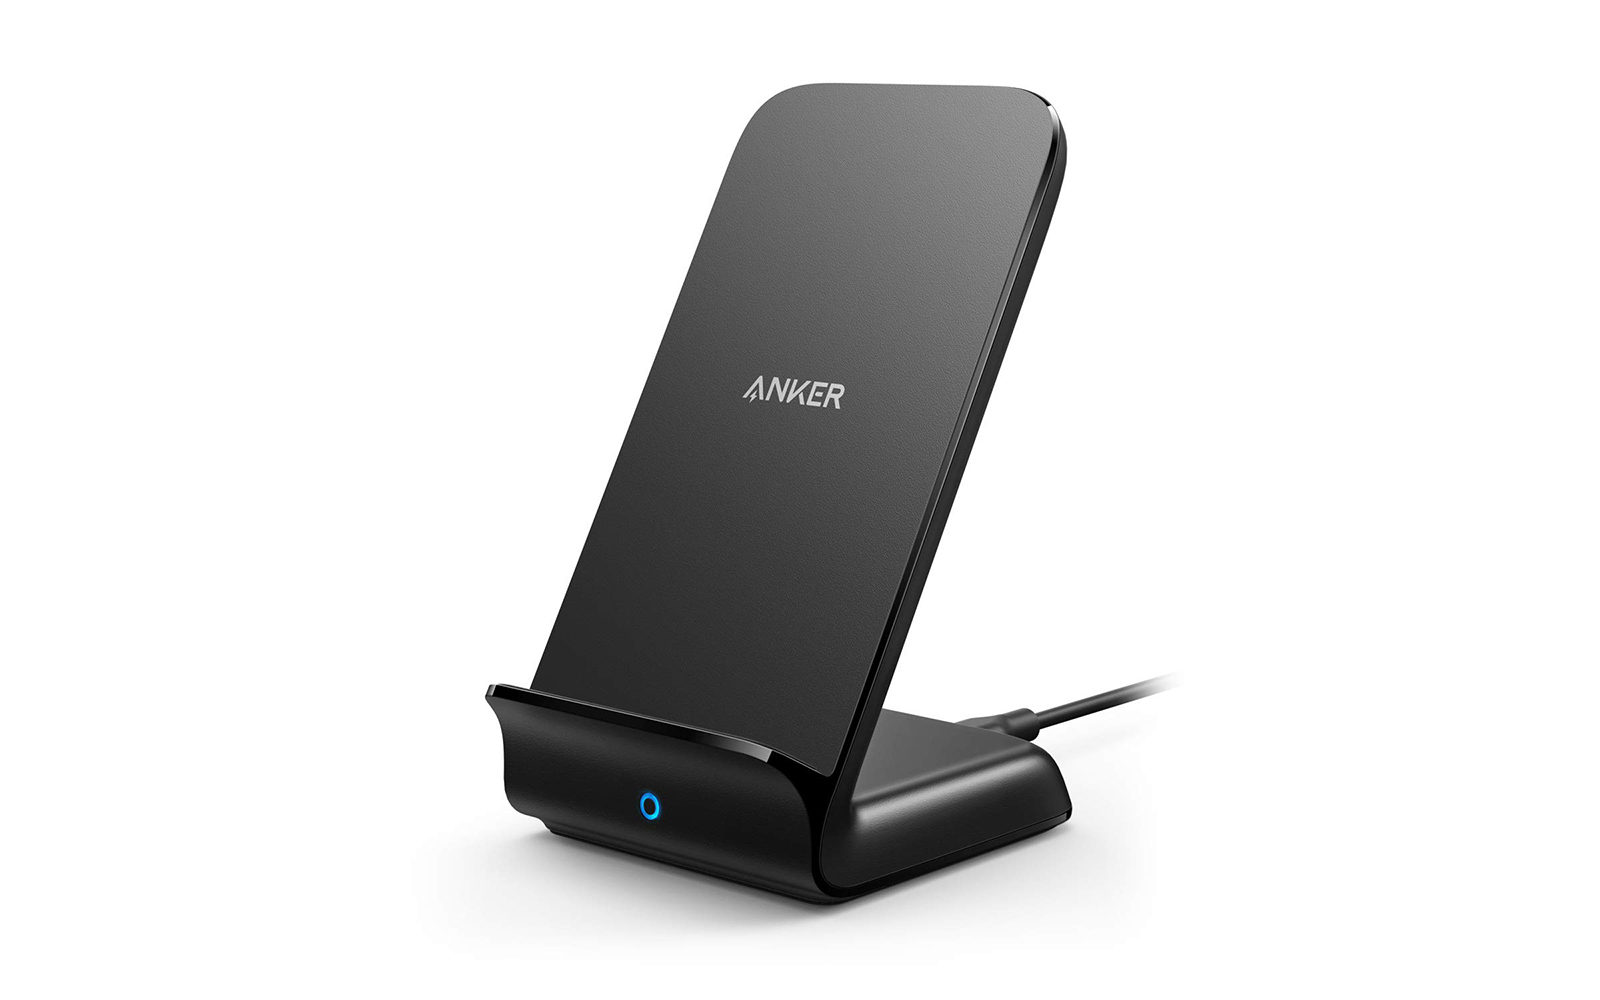 Anker Wireless Charger, PowerWave 7.5 Stand